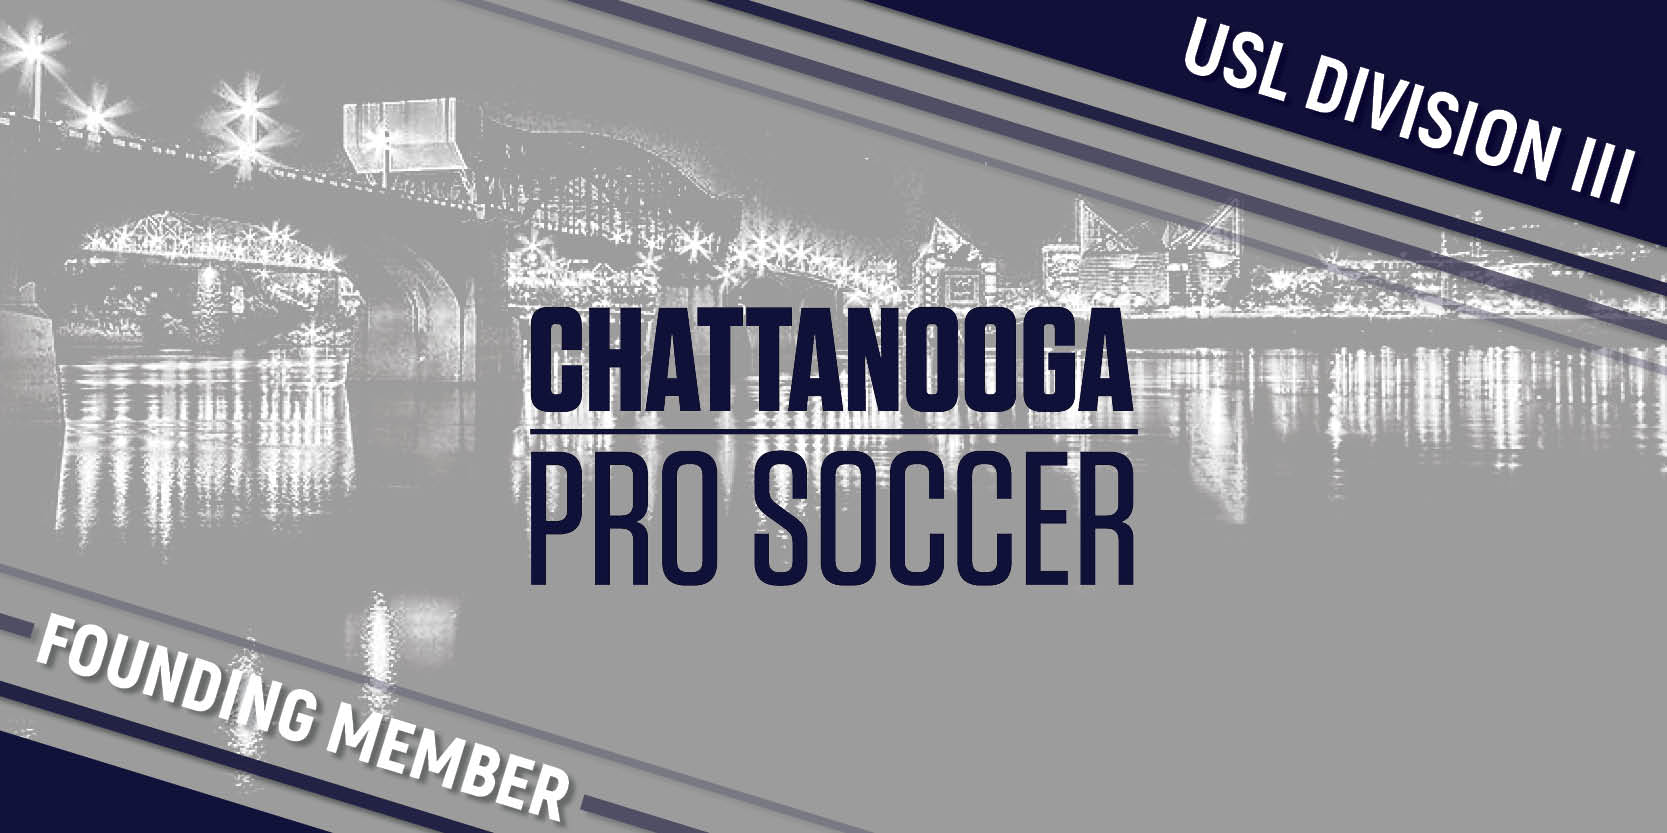 chattanooga welcomed as newest usl division iii founding member